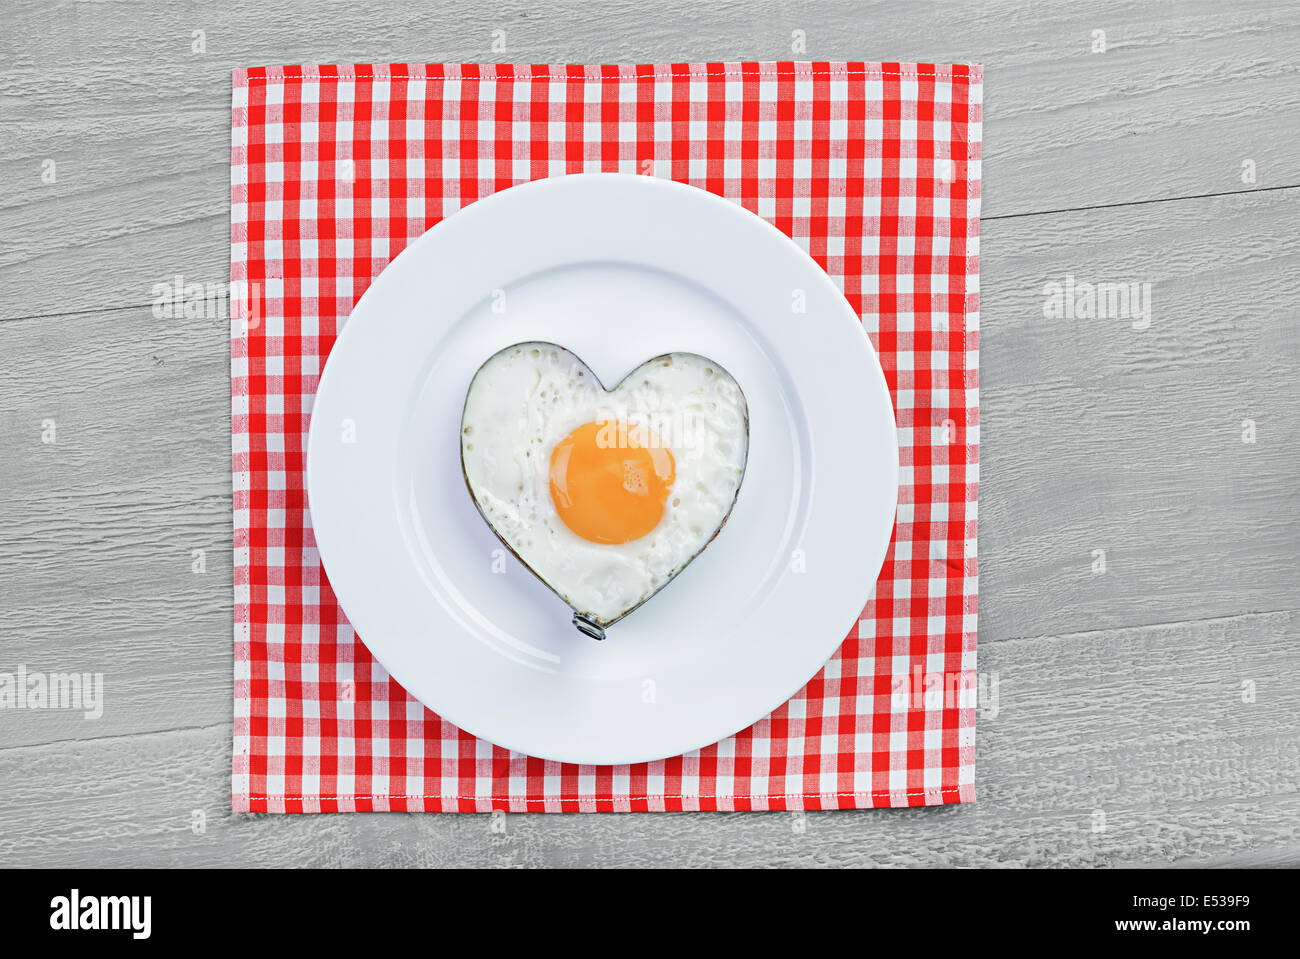 Fried egg  in heart shape on vintage table. Breakfast for a loved one - Stock Image